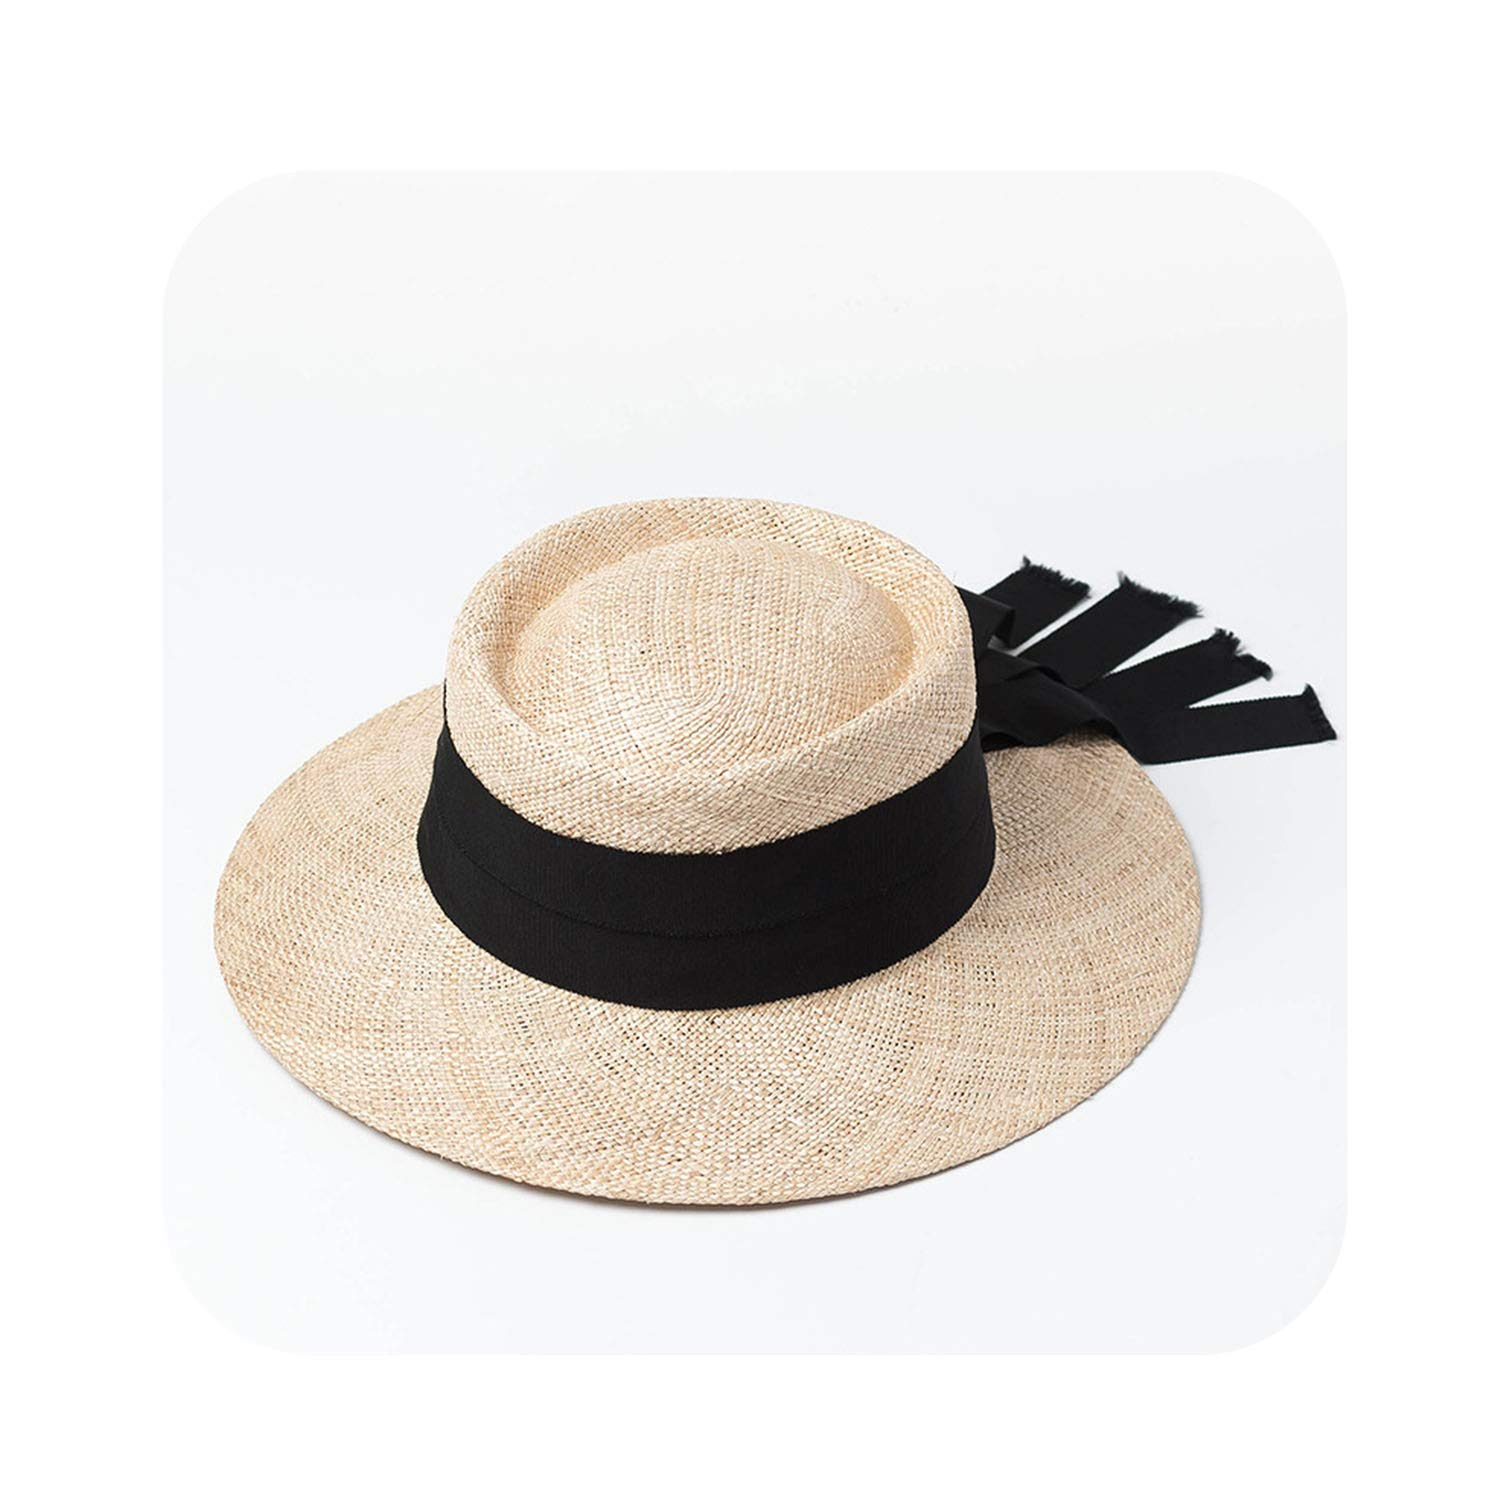 002 Black Women Sun Hat Summer Holiday Beach Hats Ladies Tope Hat wi,